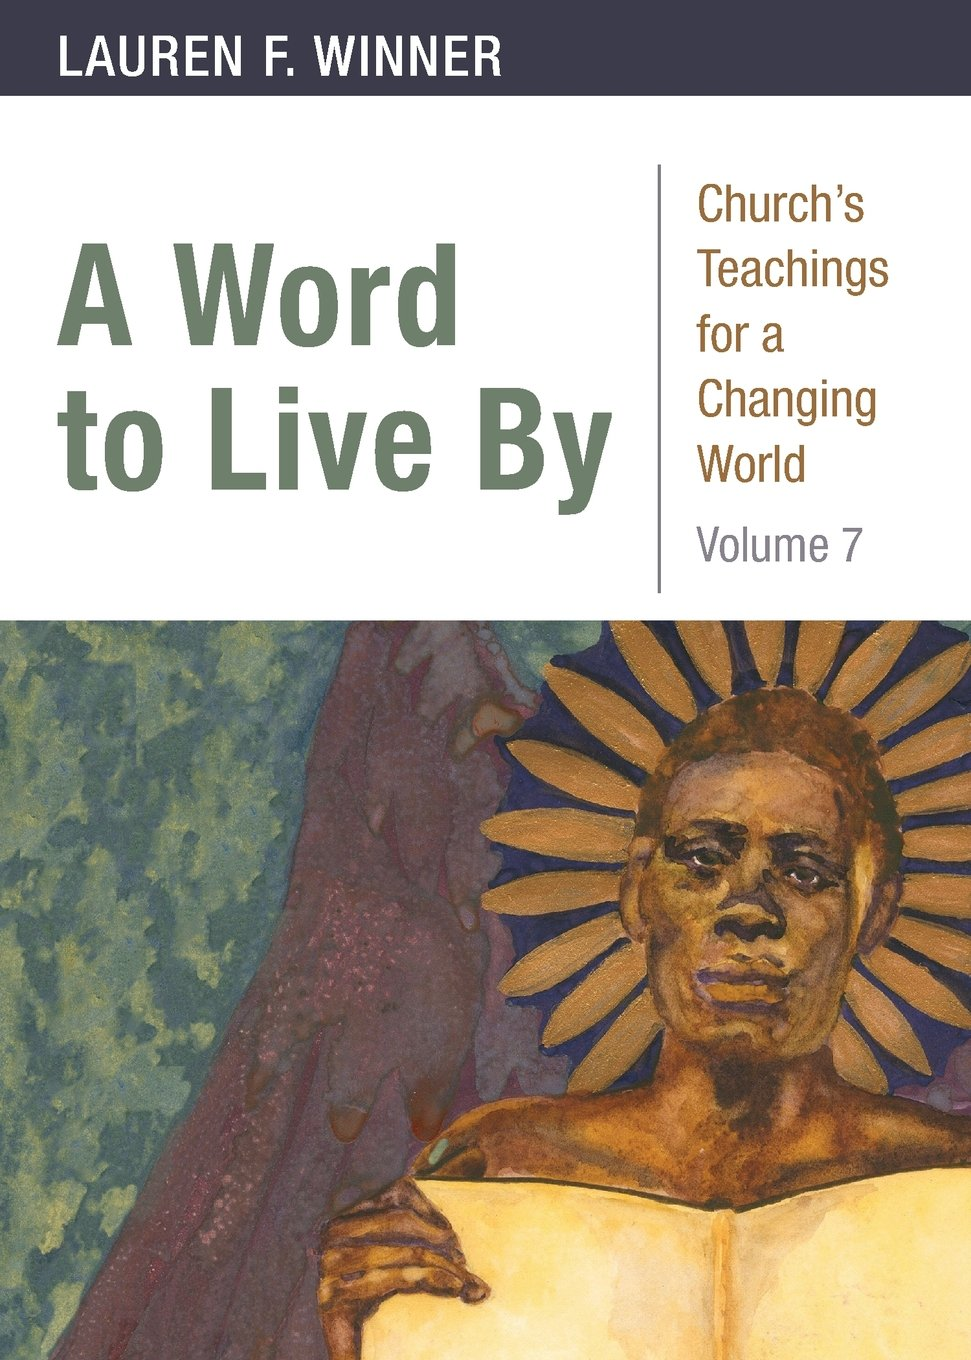 Download A Word to Live By: Church's Teachings for a Changing World, Volume 7 PDF